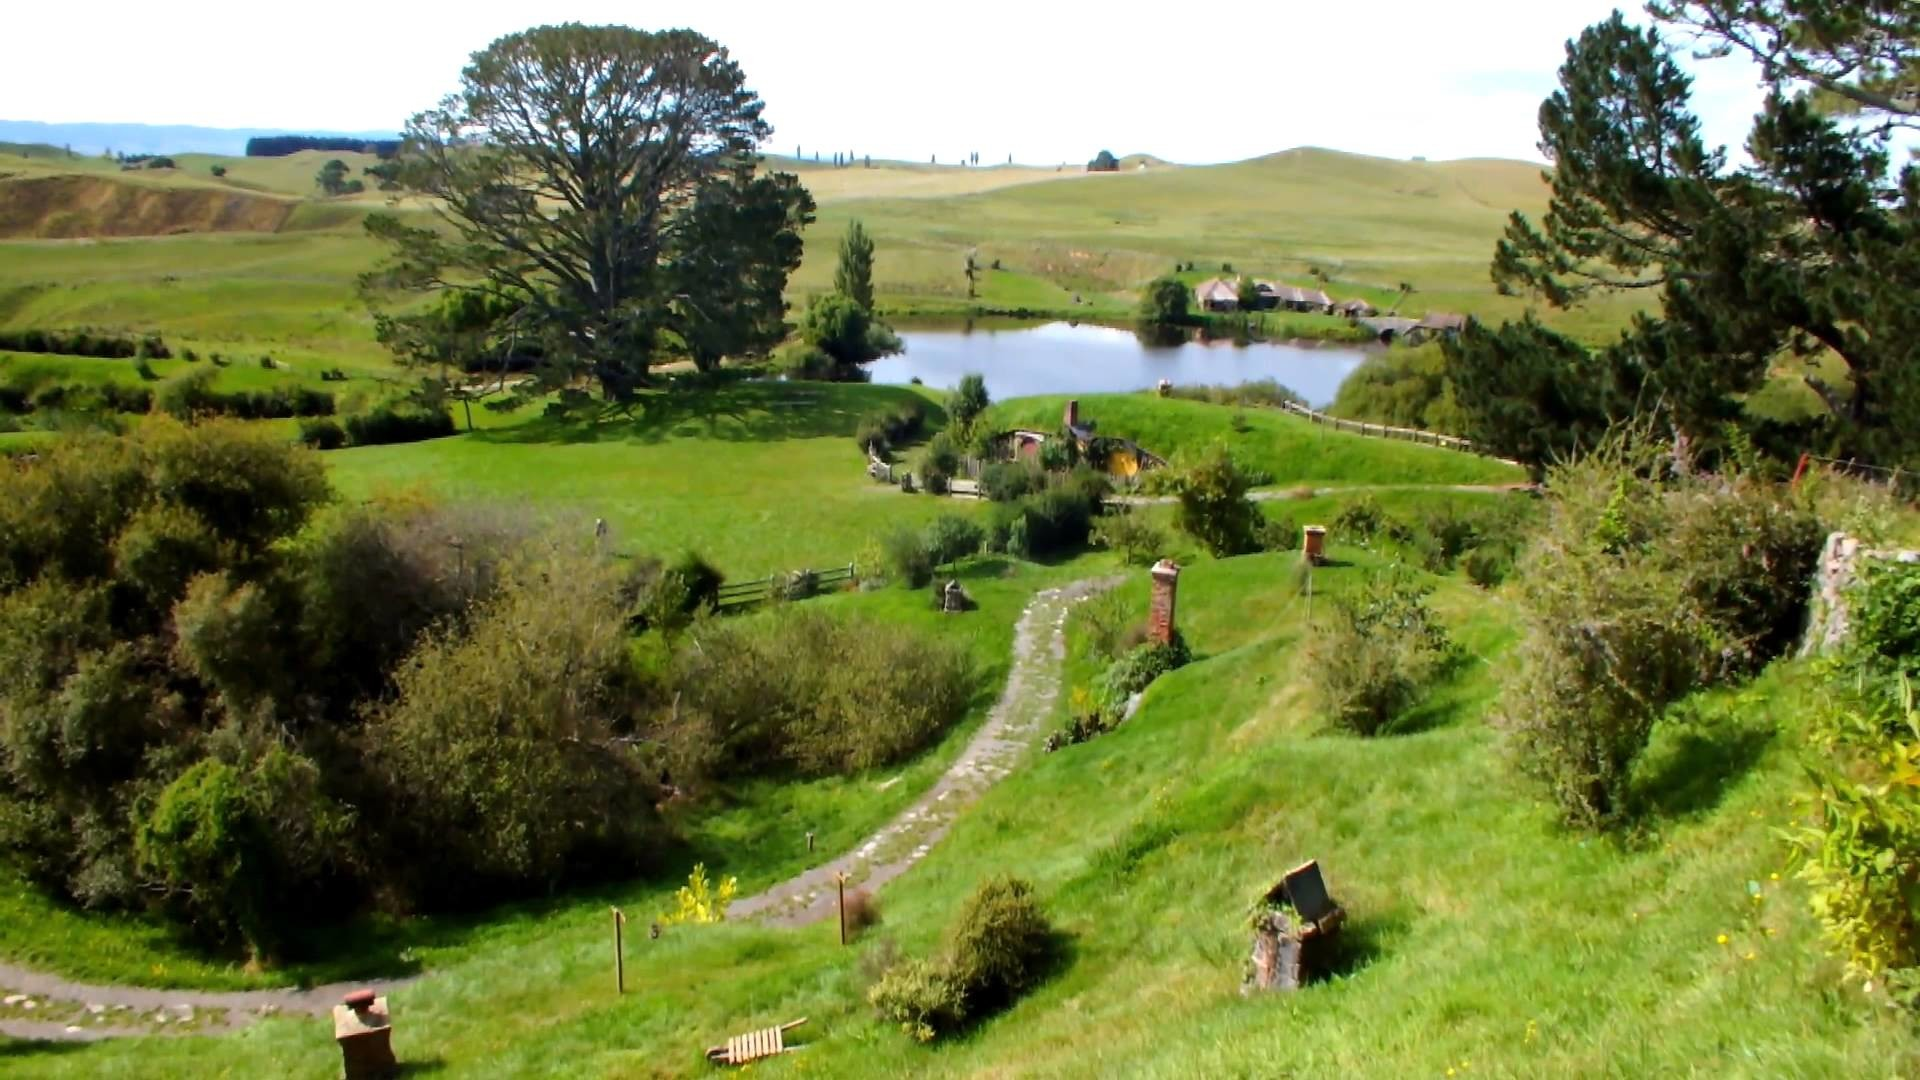 Hobbiton / Hobbingen im Auenland / The Shire in 2012: The Lord of the Rings  + The Hobbit